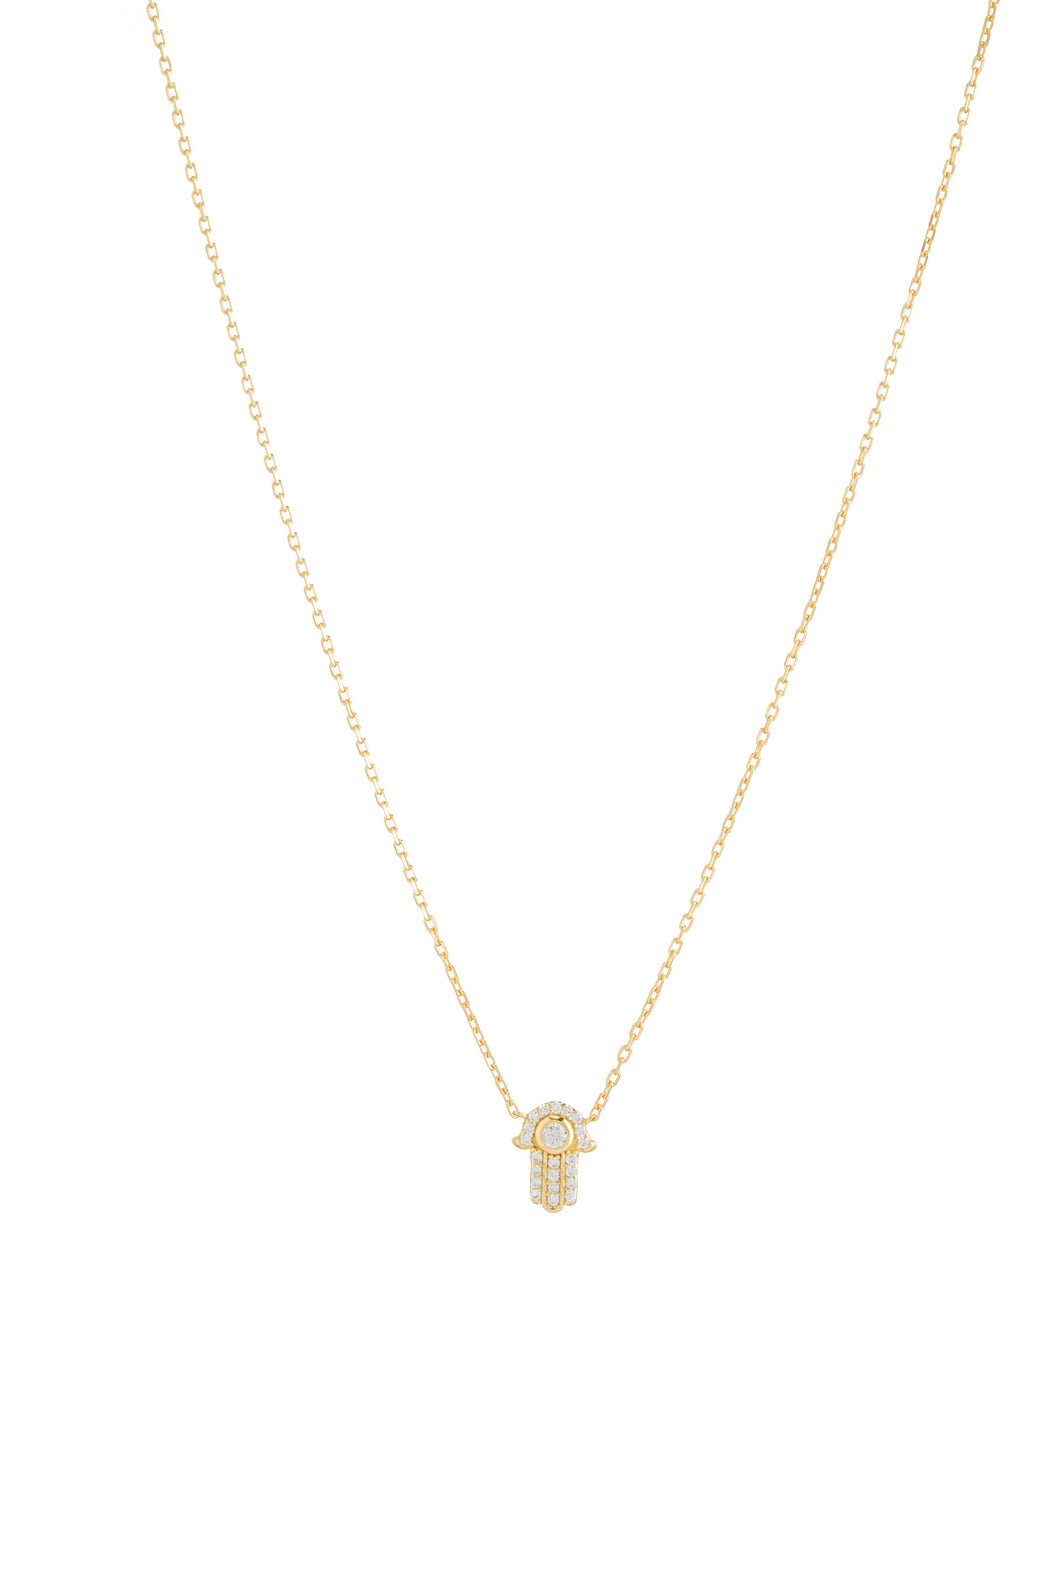 HAMSA SMALL NECKLACE